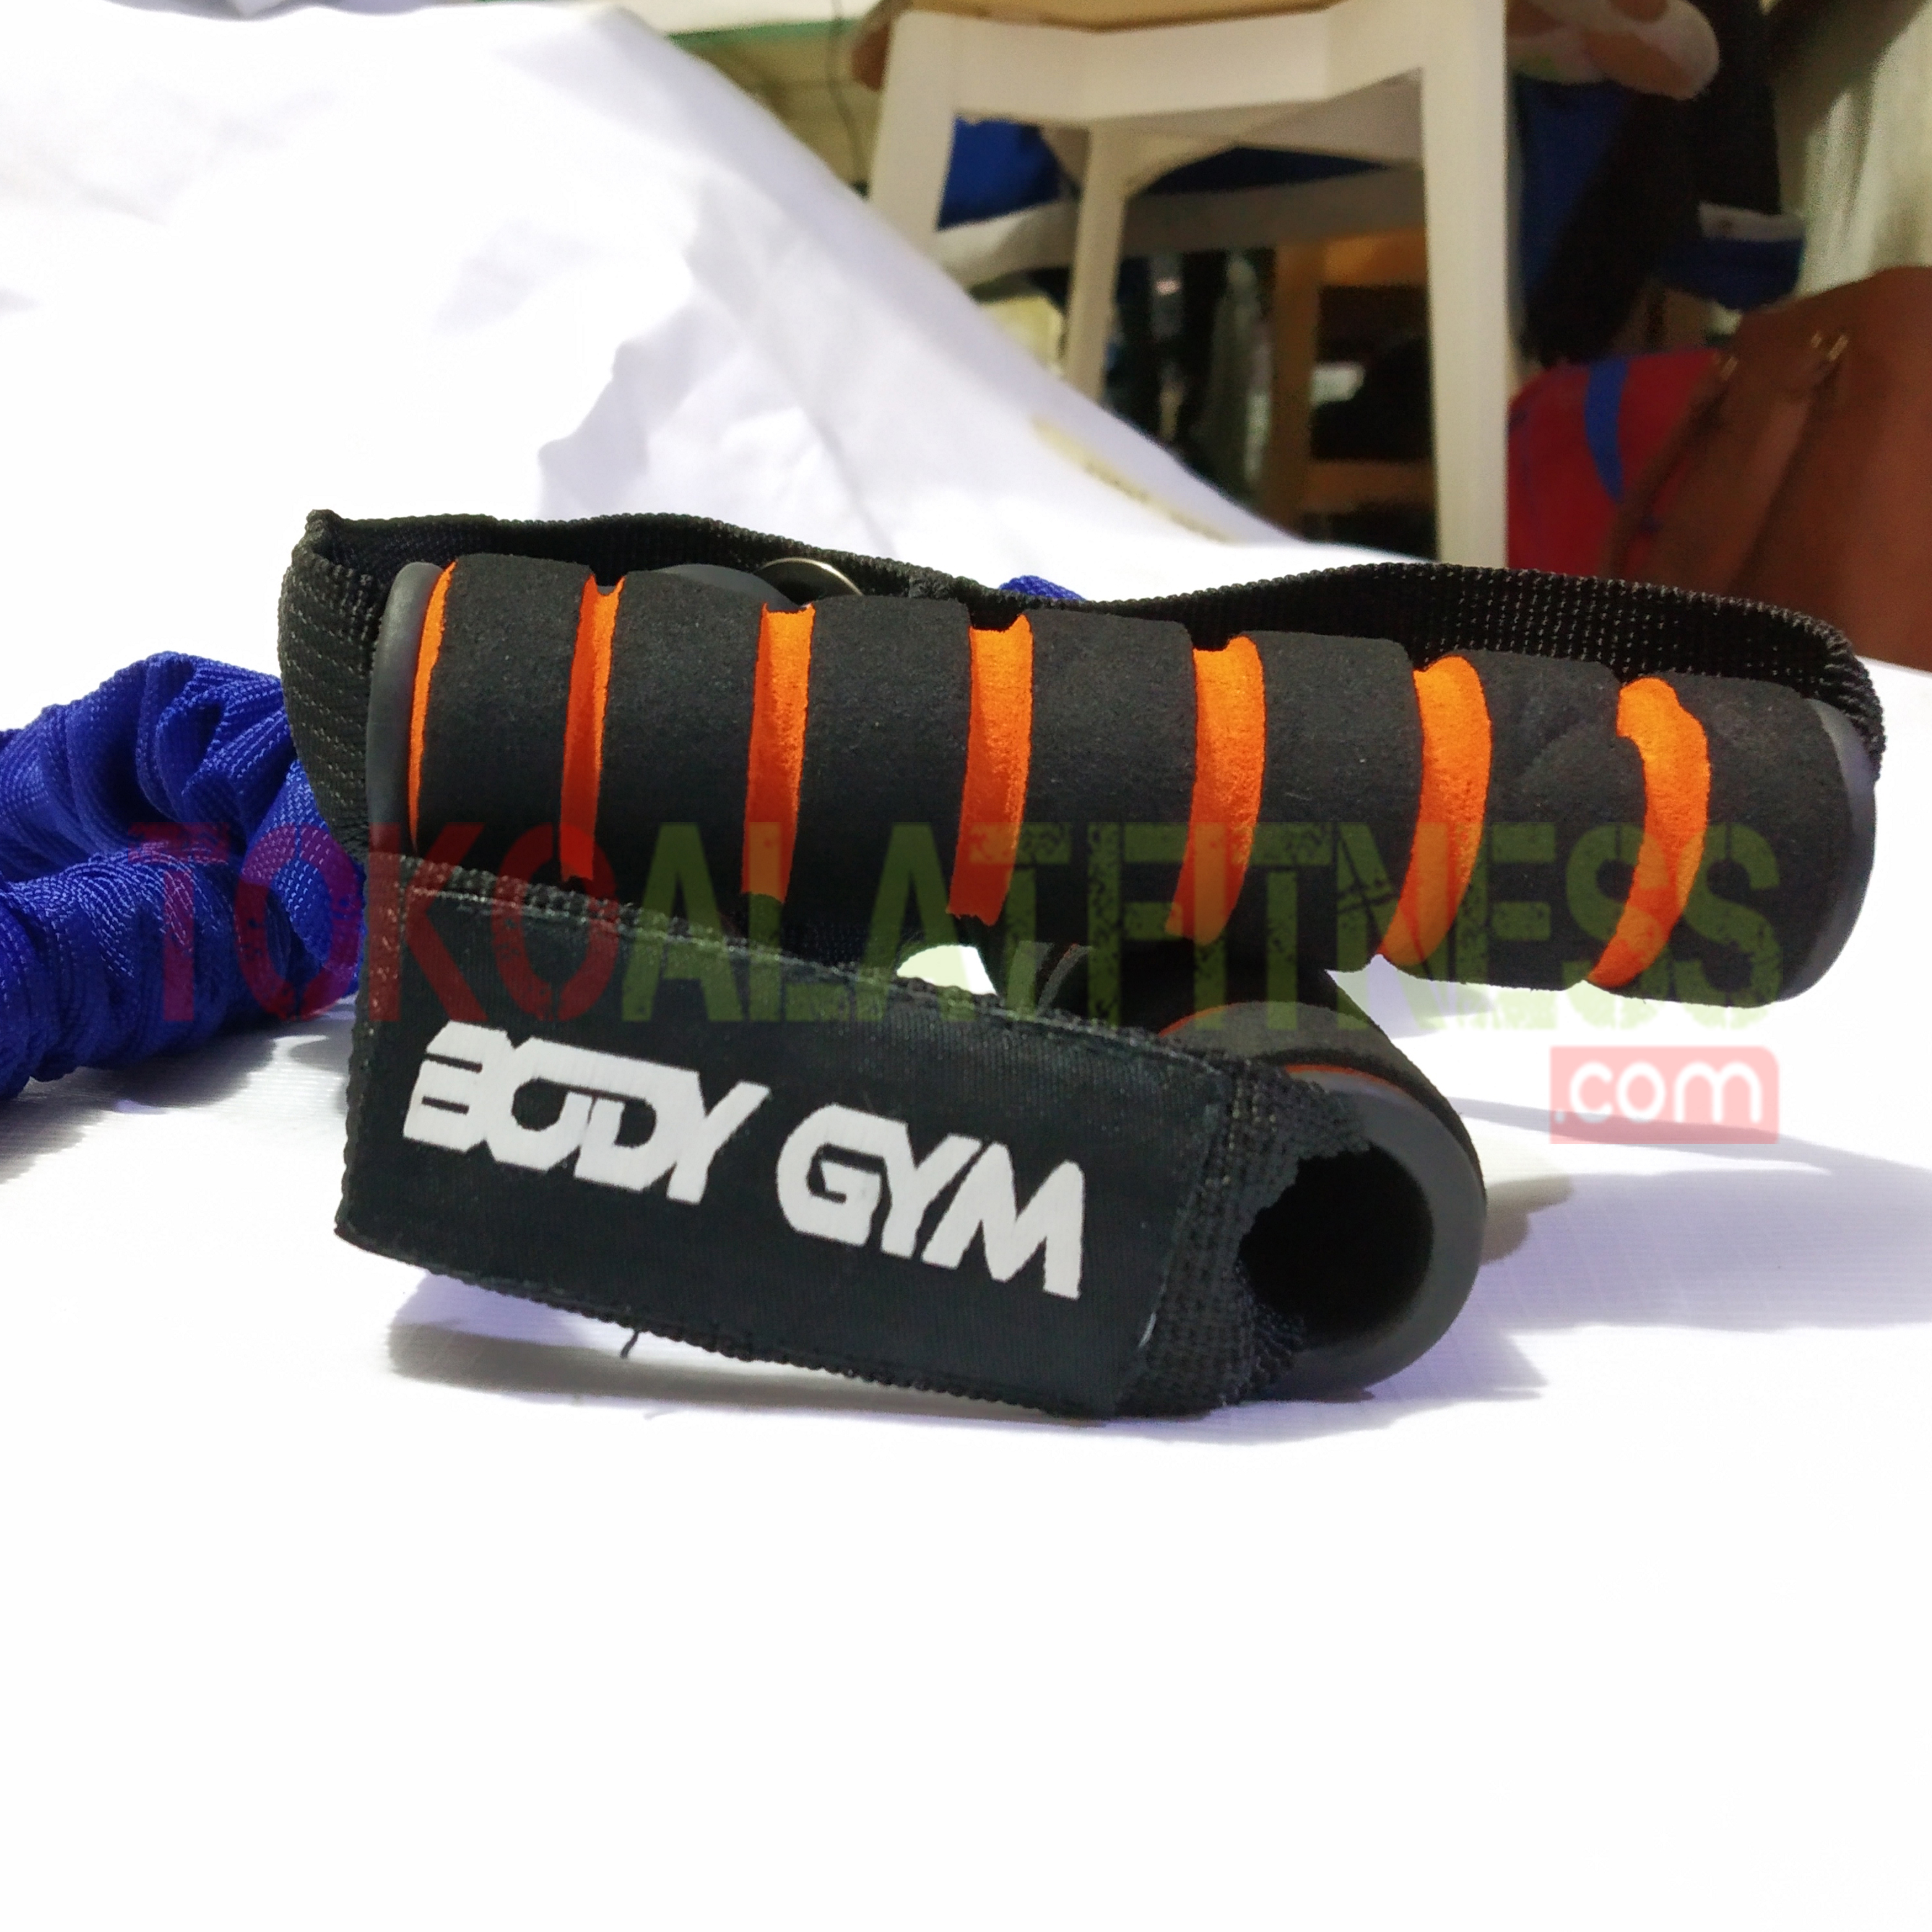 PALL ROPE BIRU ORI 2 WTM - Resistance Band / Strap with Handle Biru 25 Lbs Body Gym - ASSRB18B